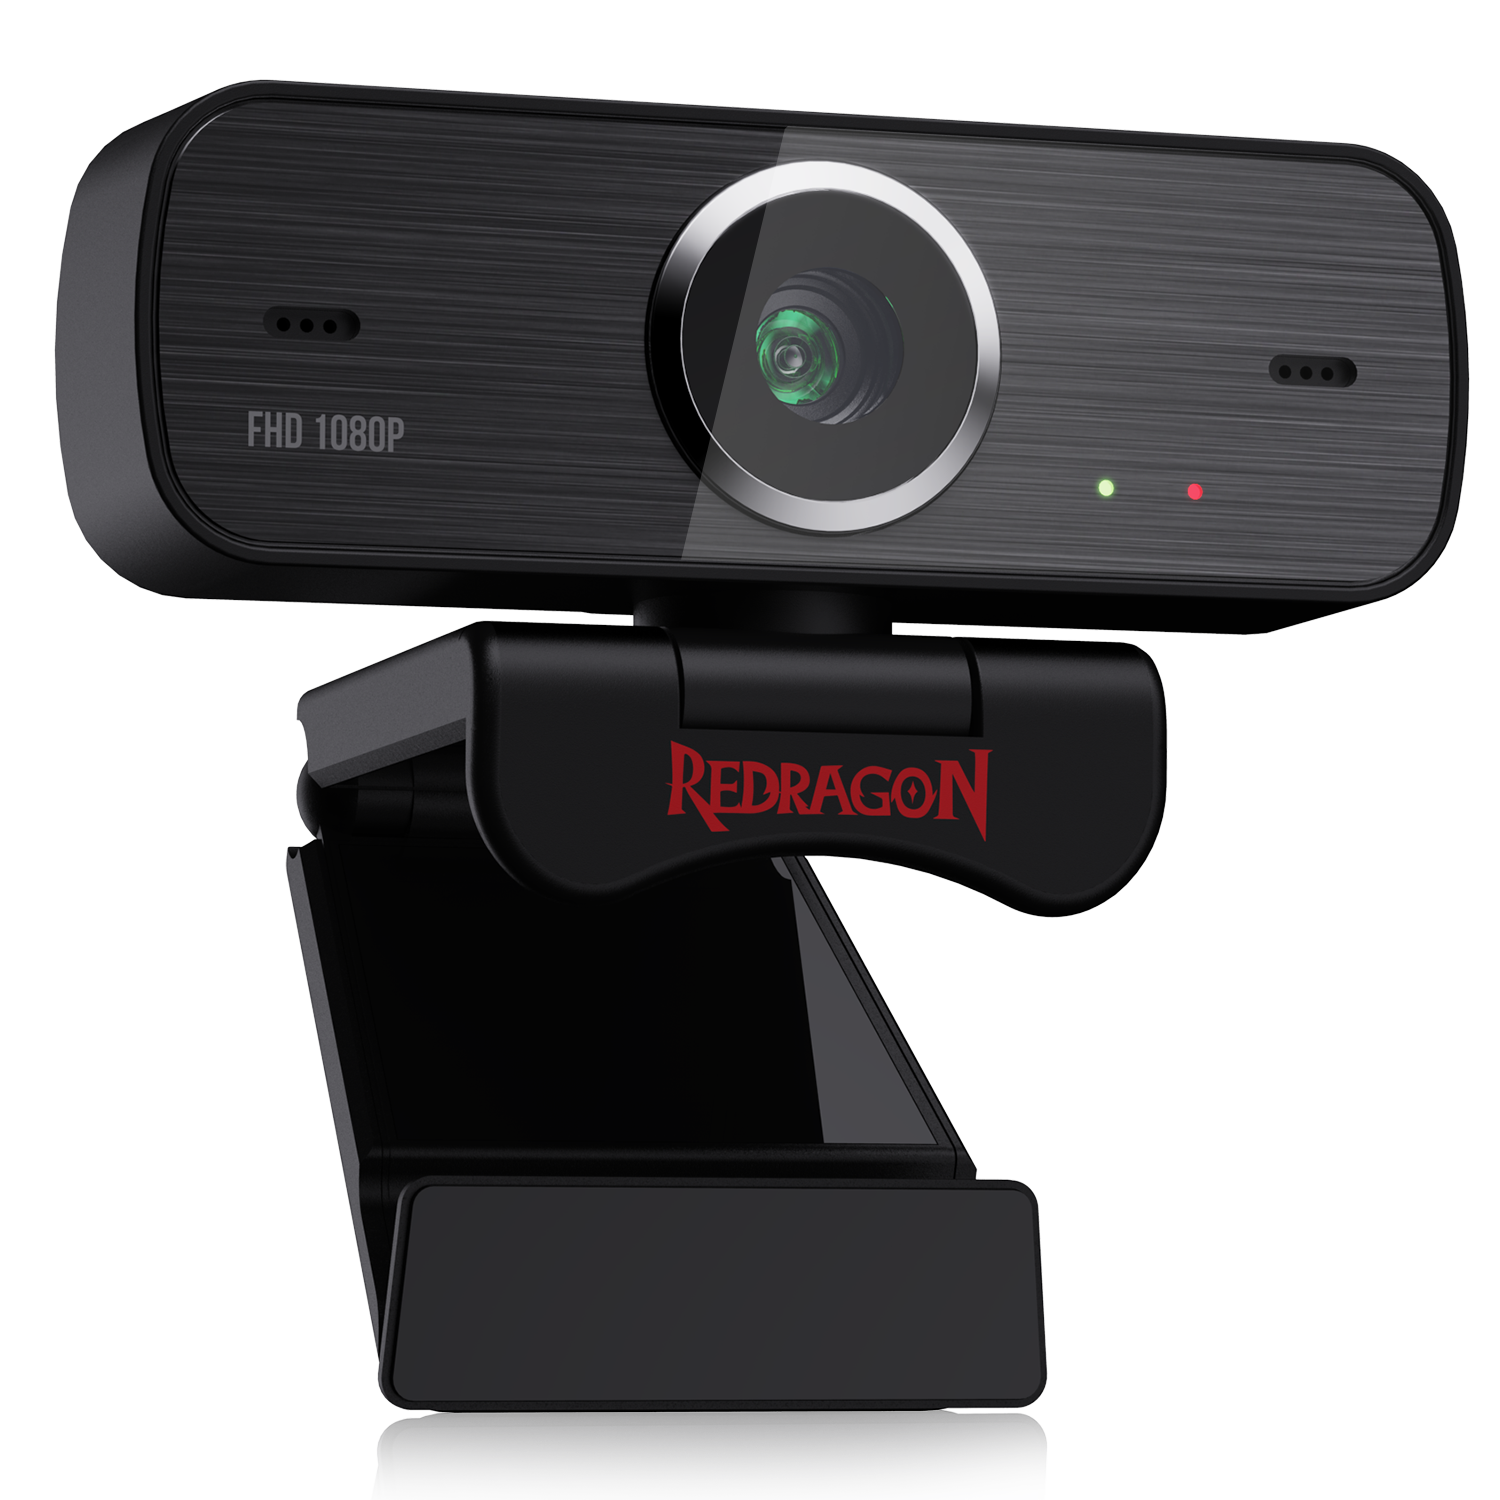 Redragon Gw800 1080p Webcam With Built In Dual Microphone 360 Degree R Redragon Zone